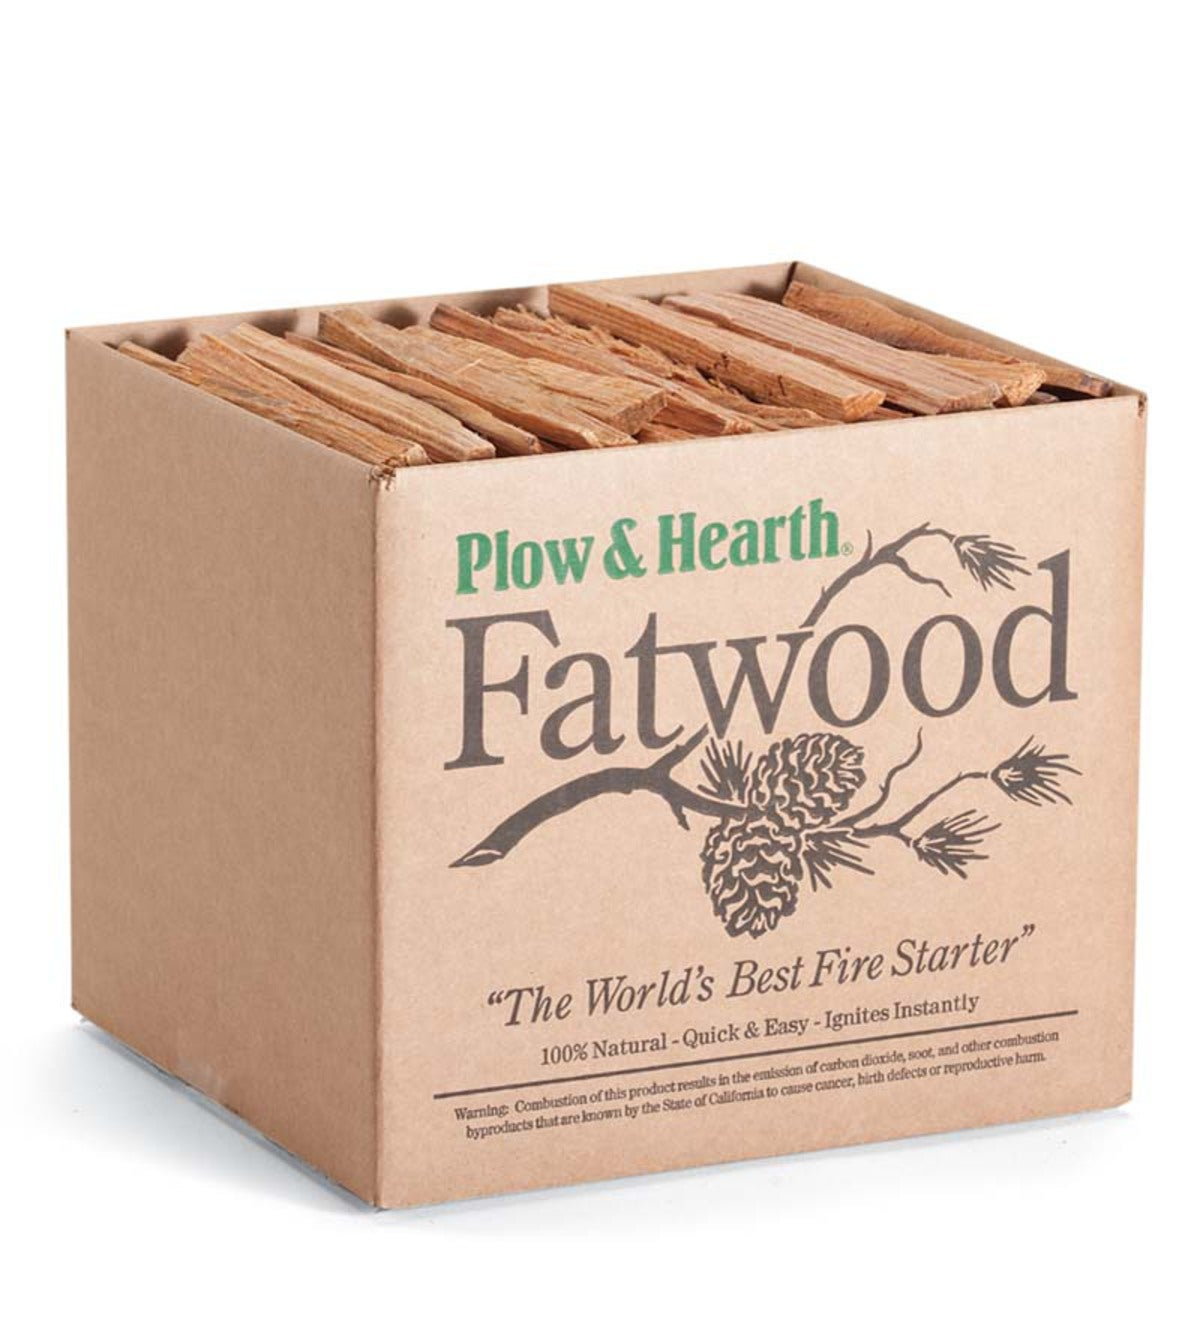 Fatwood Fire-Starter, 10 lb. Box